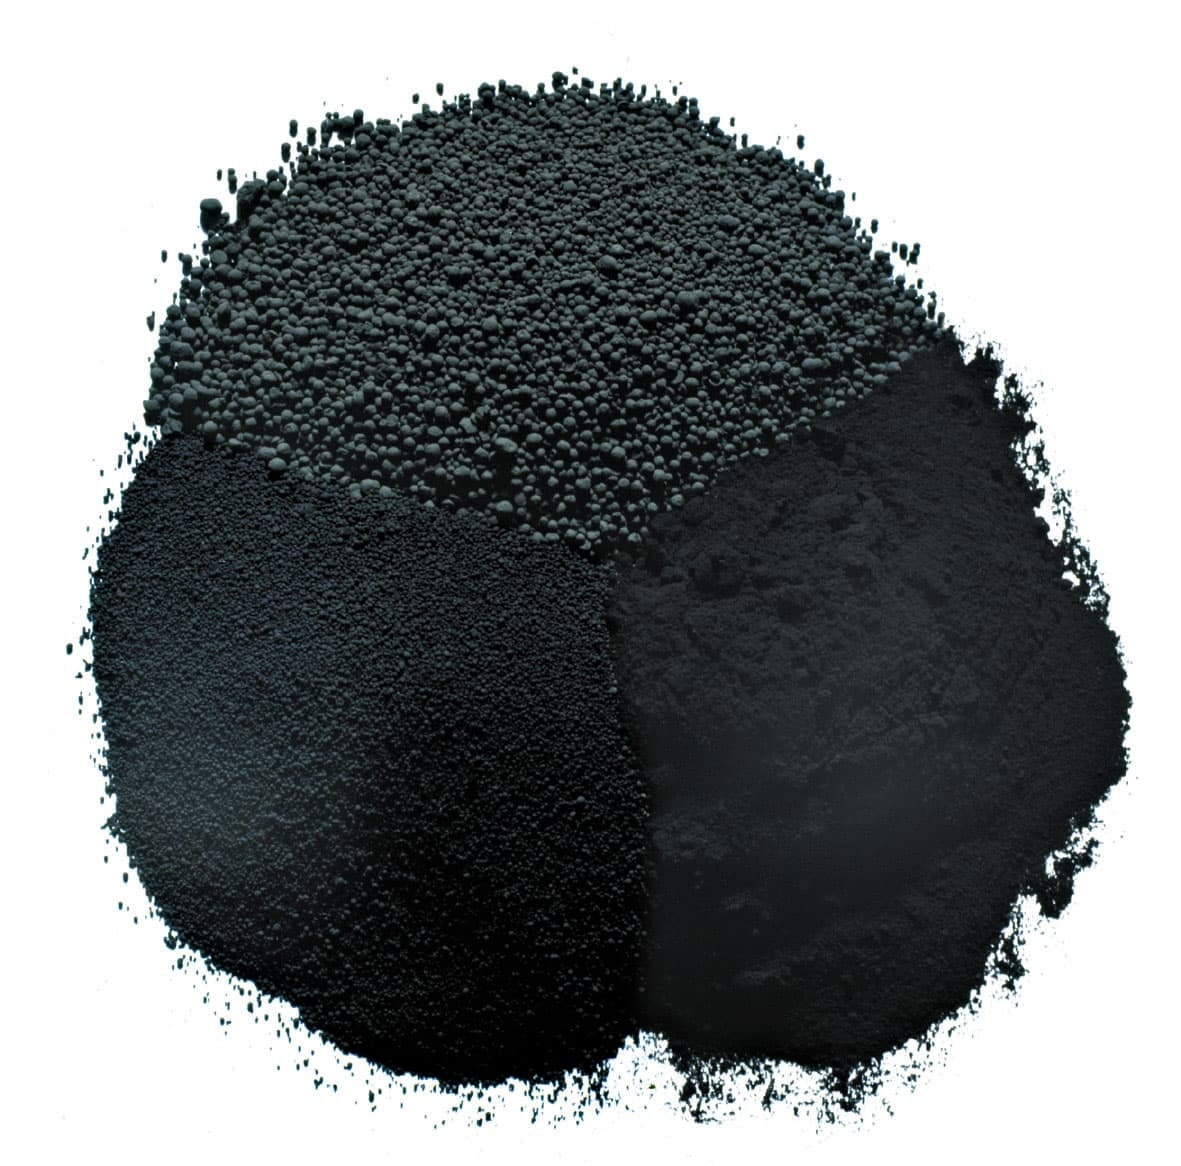 Orion Engineered Carbons industriagomma carbon black